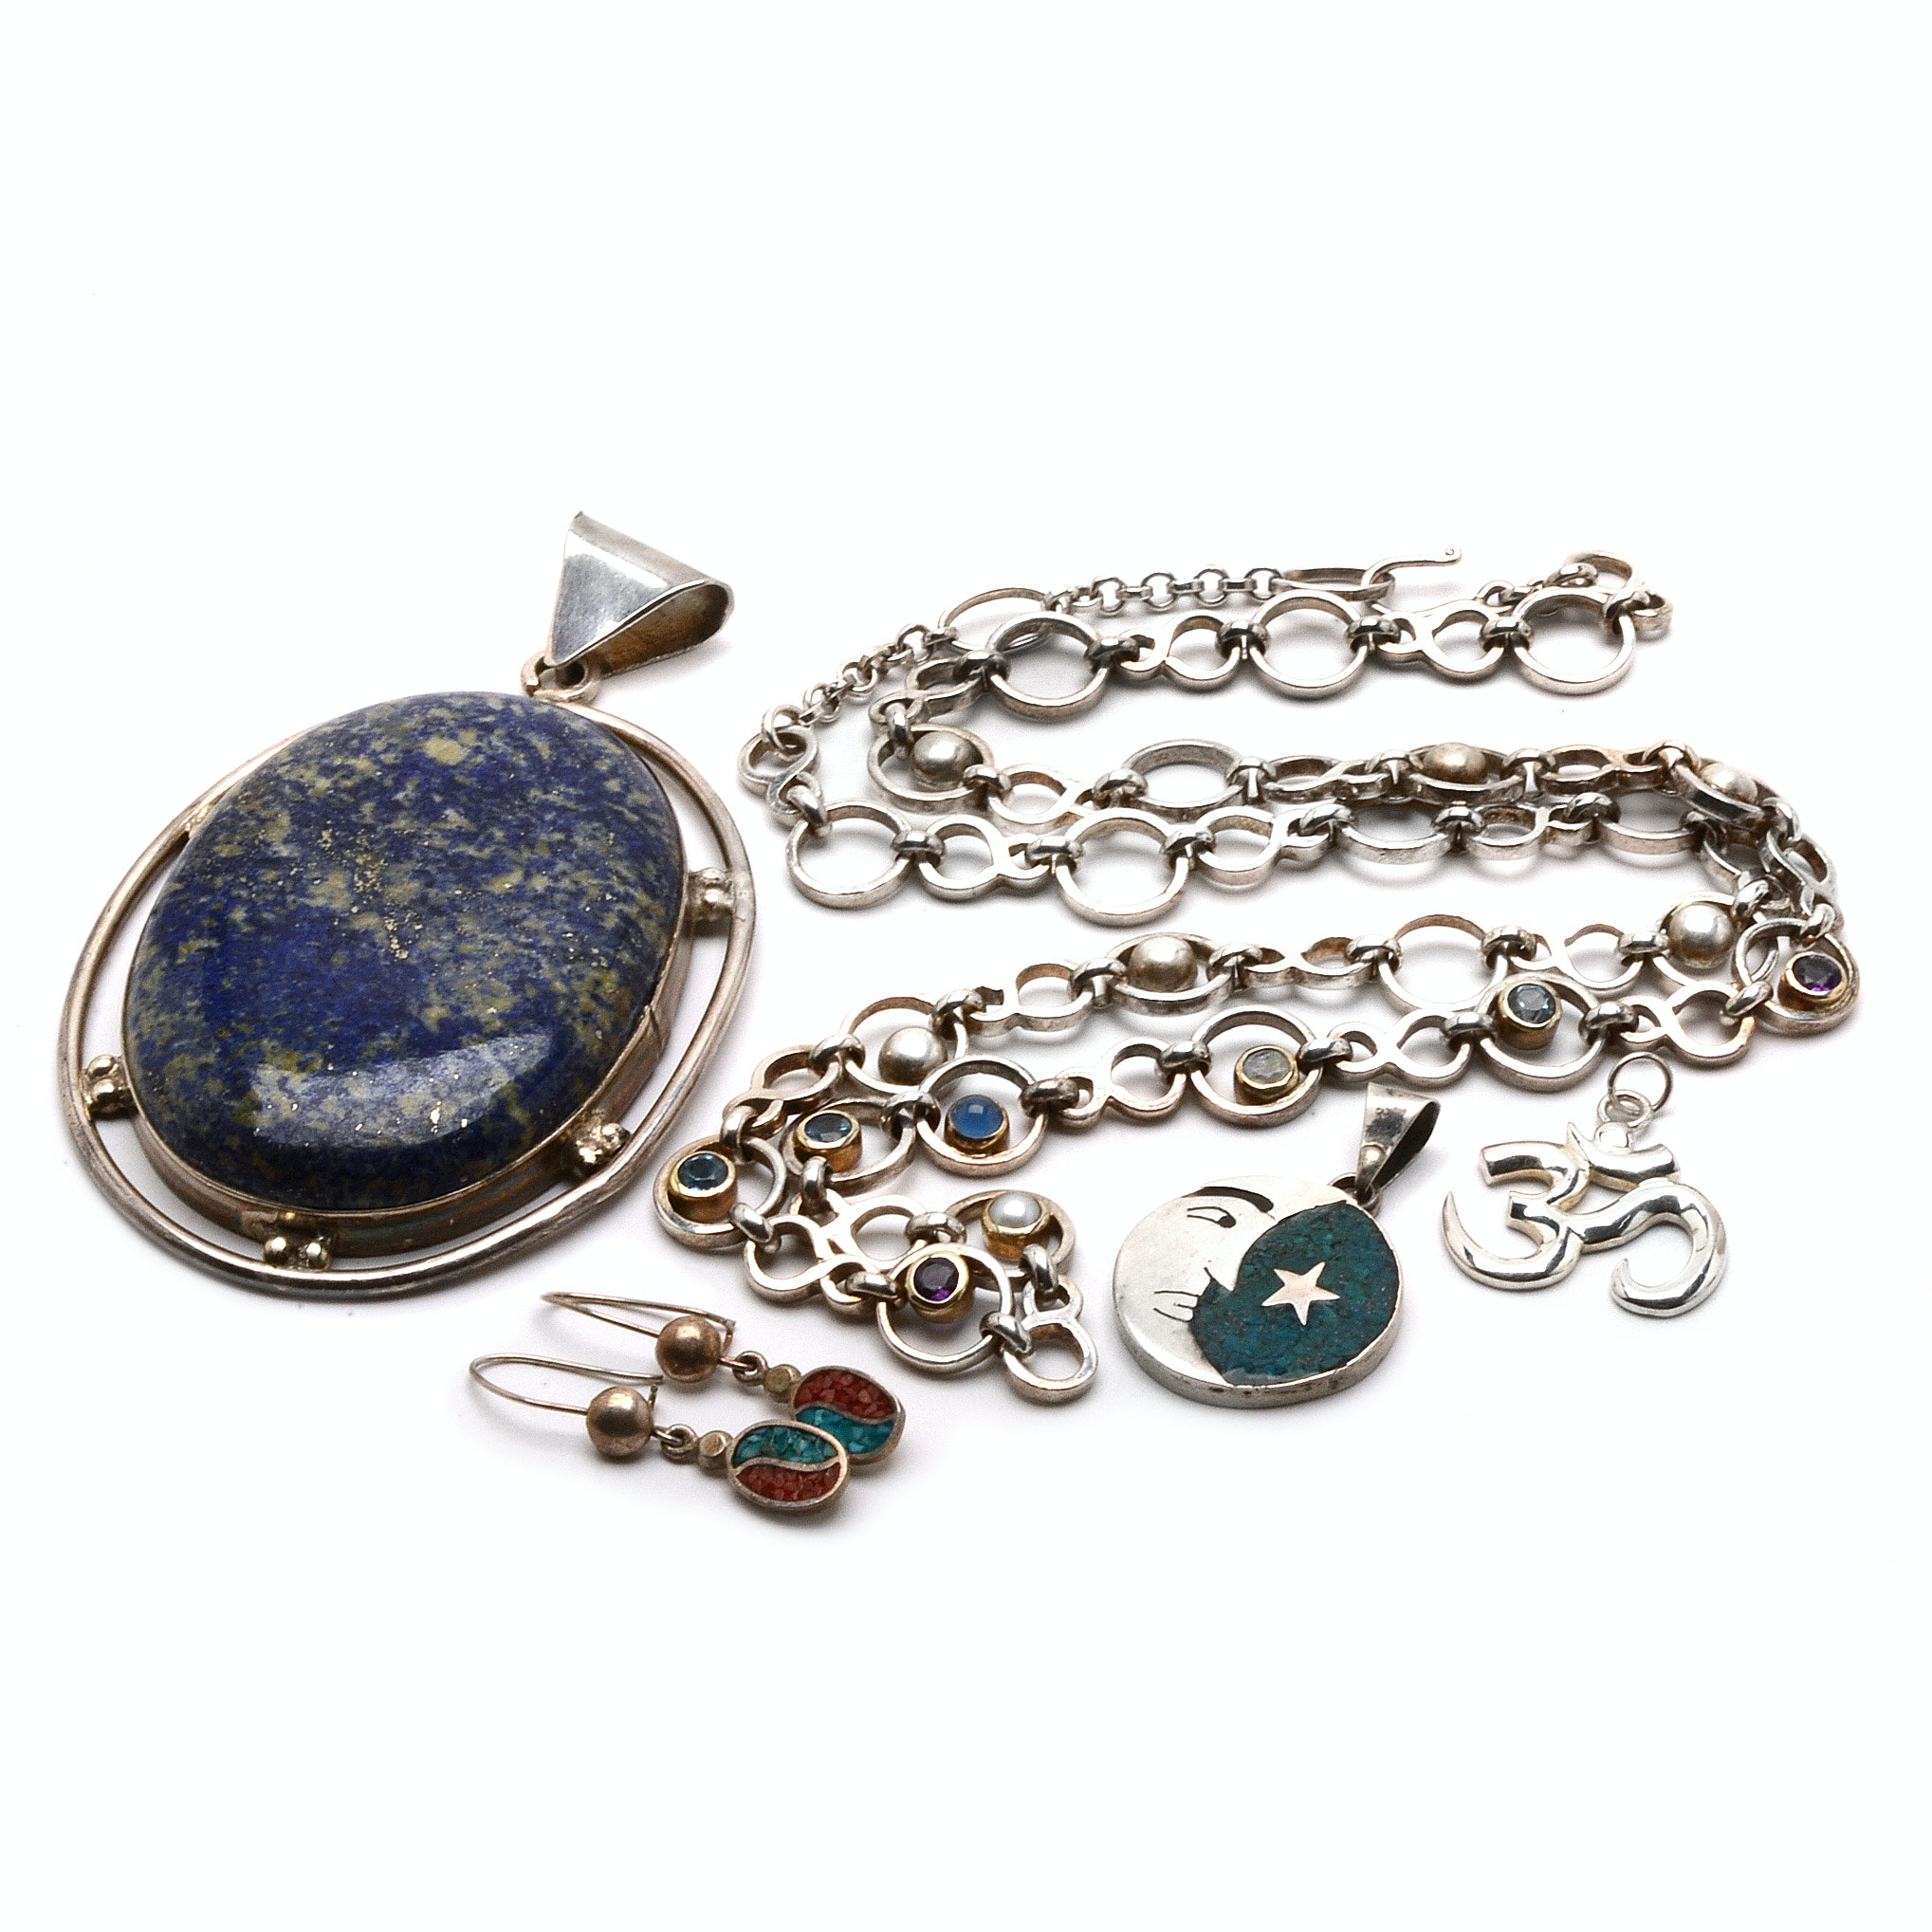 Sterling Silver Jewelry with Bezel-Set and Inlaid Stones